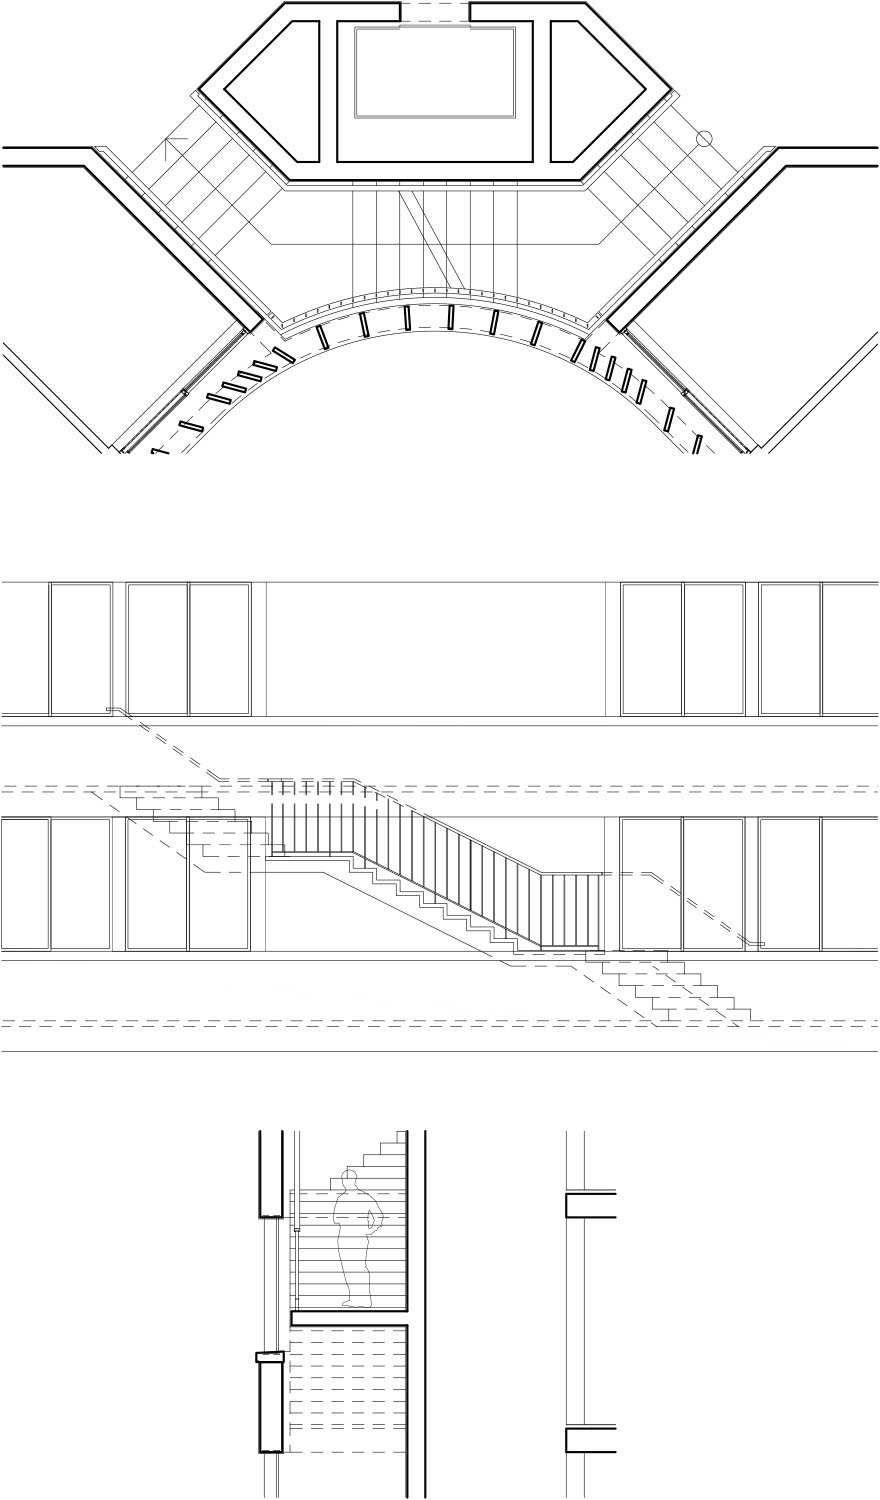 Detail building core gmp von Gerkan, Marg and Partners Architects}